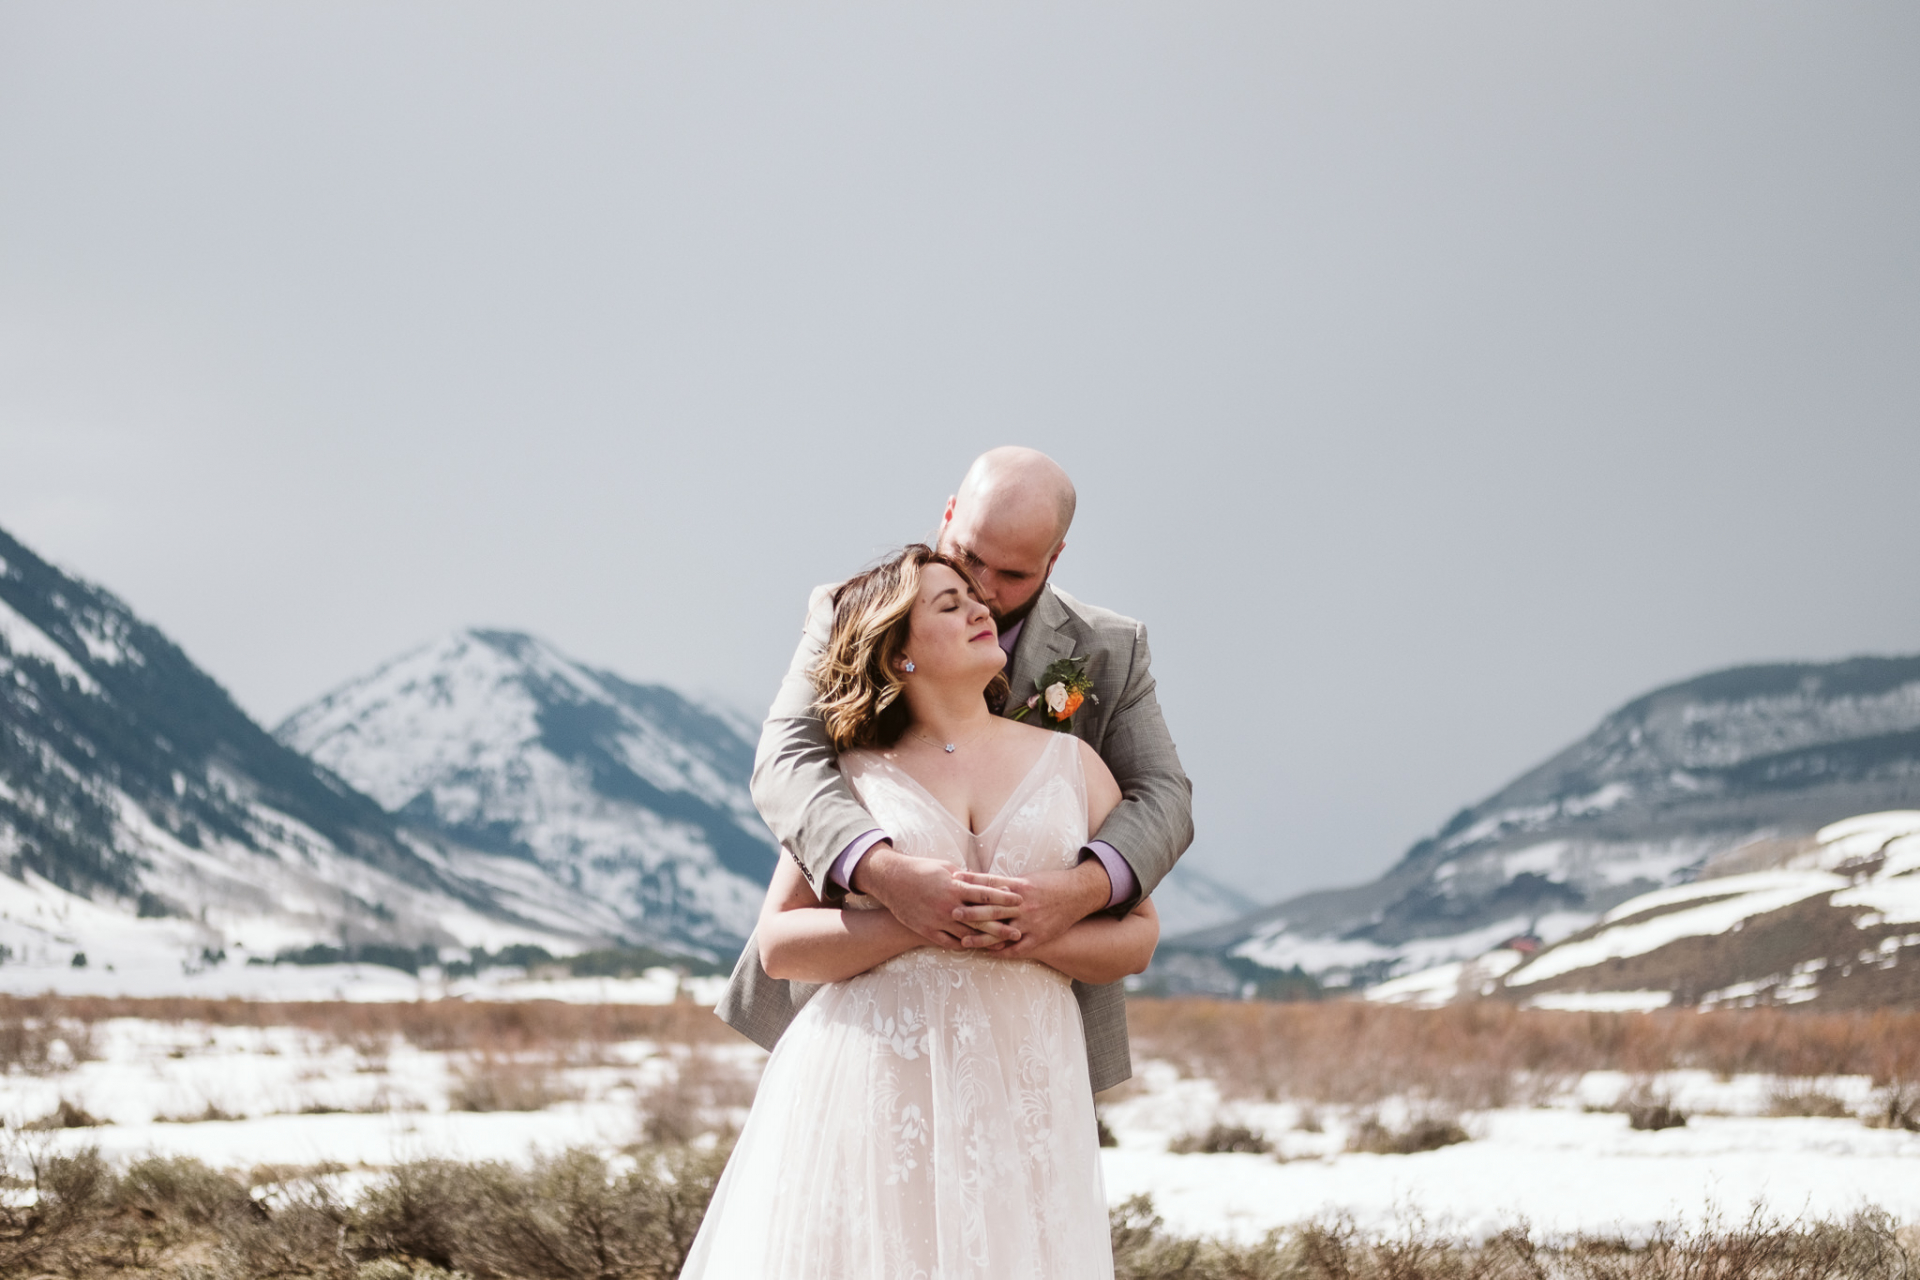 Colorado Winter Elopement Portrait | the most beautiful light for their portraits when the sun peeked through the clouds